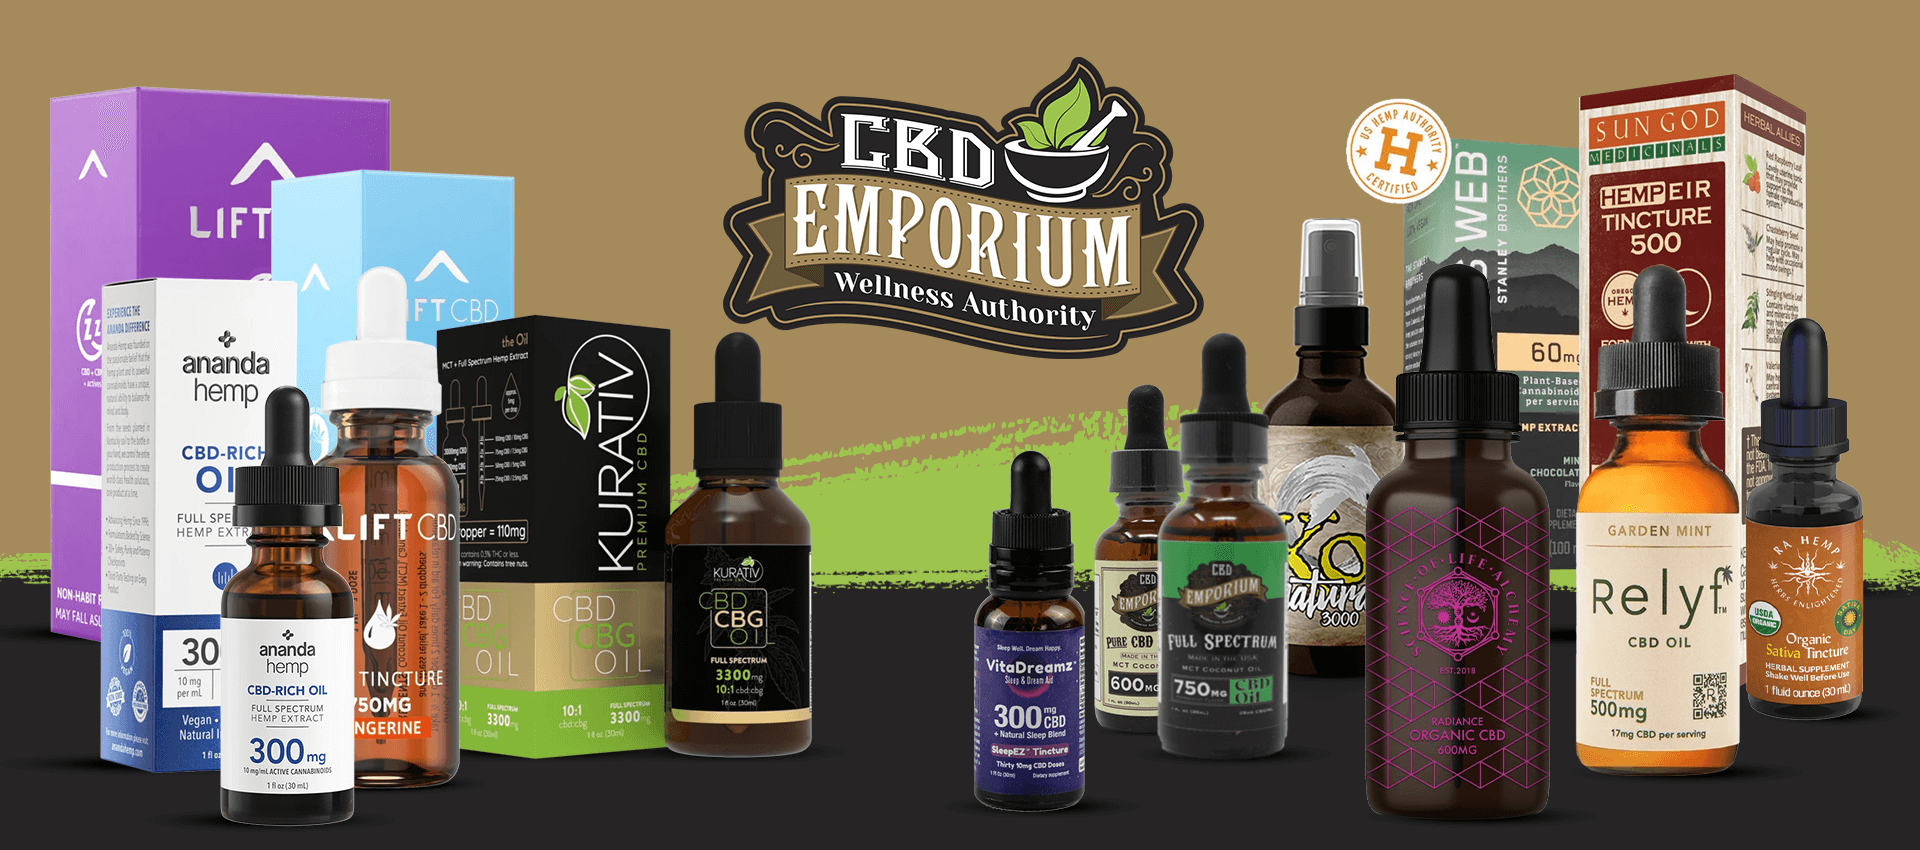 CBD Tinctures and CBD Oils at CBD Emporium